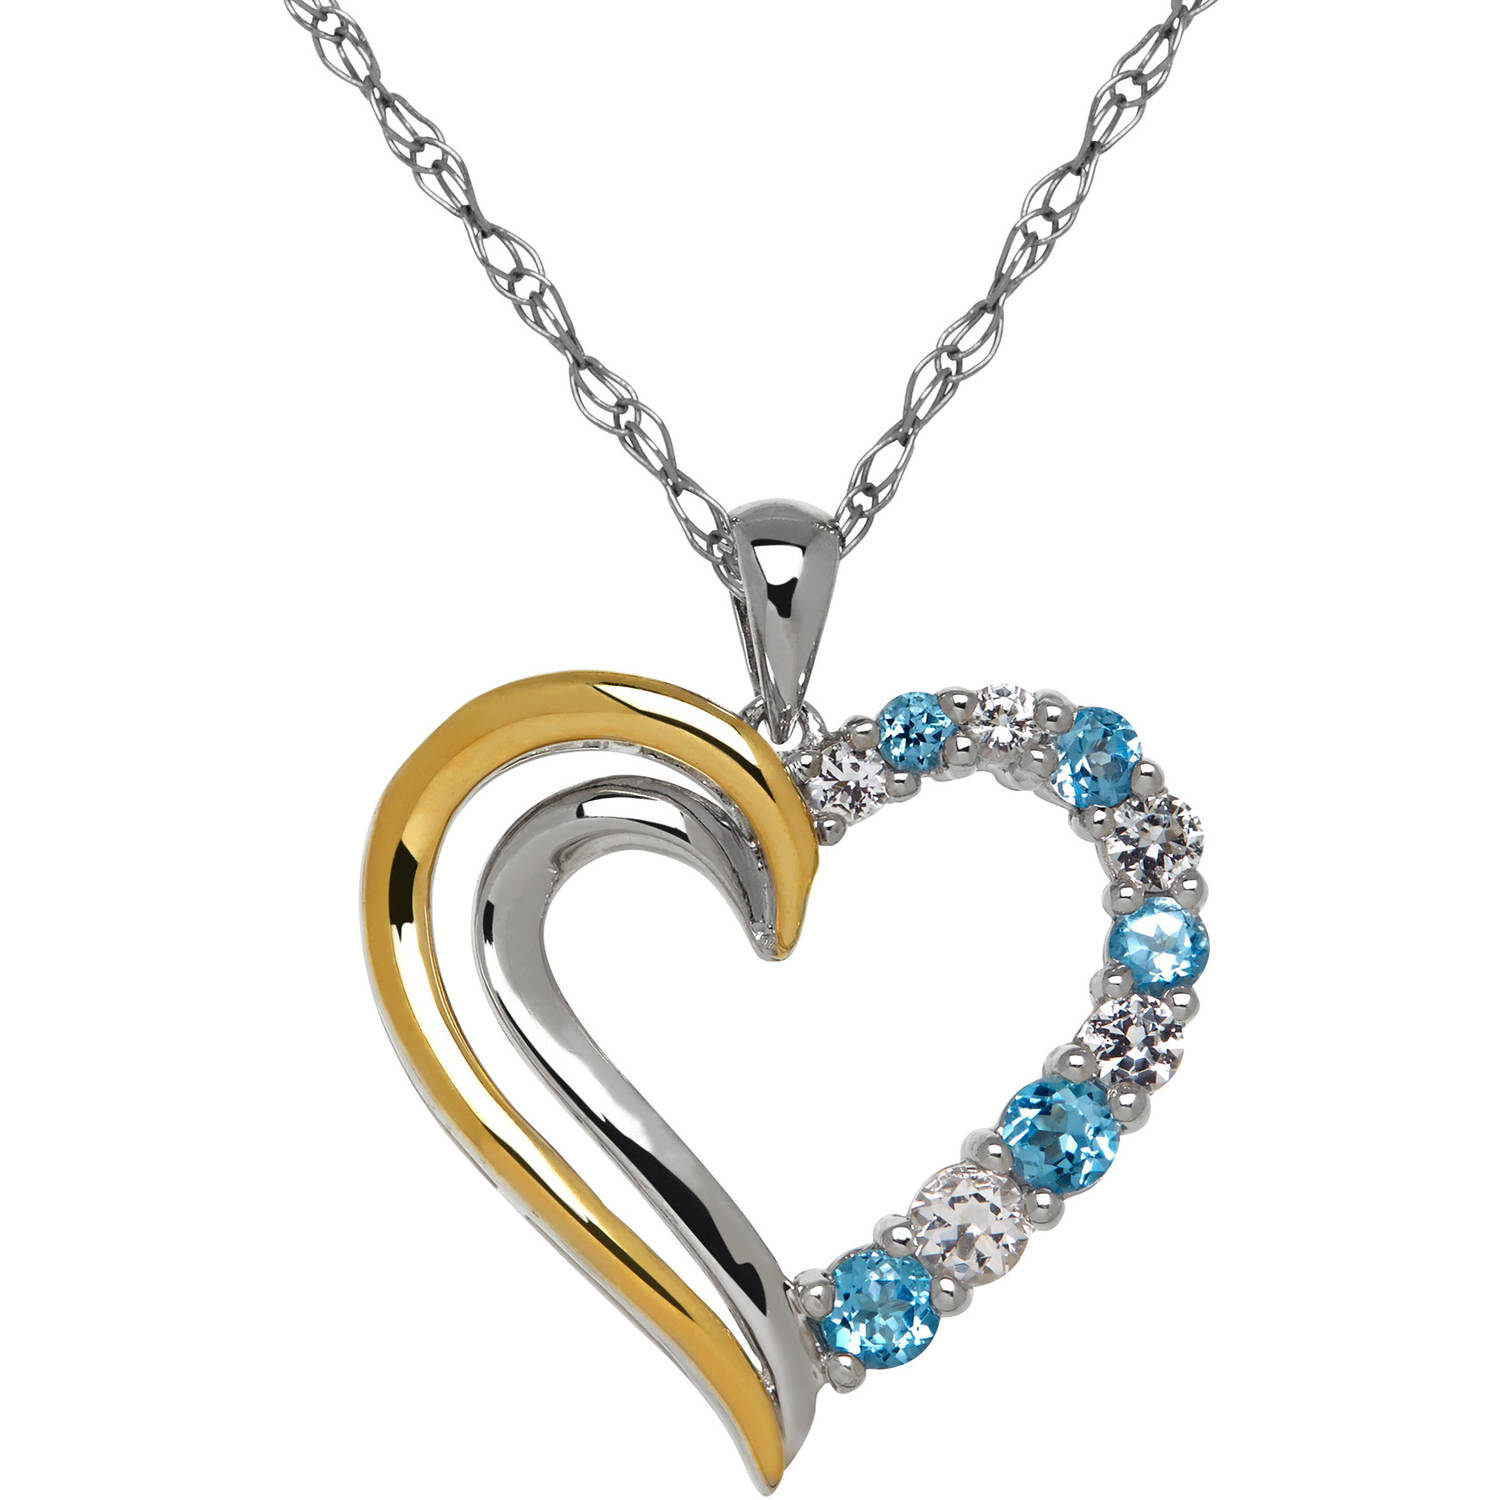 Duet Blue with White Topaz Sterling Silver and 10kt Yellow Gold Open Heart Pendant, 18""